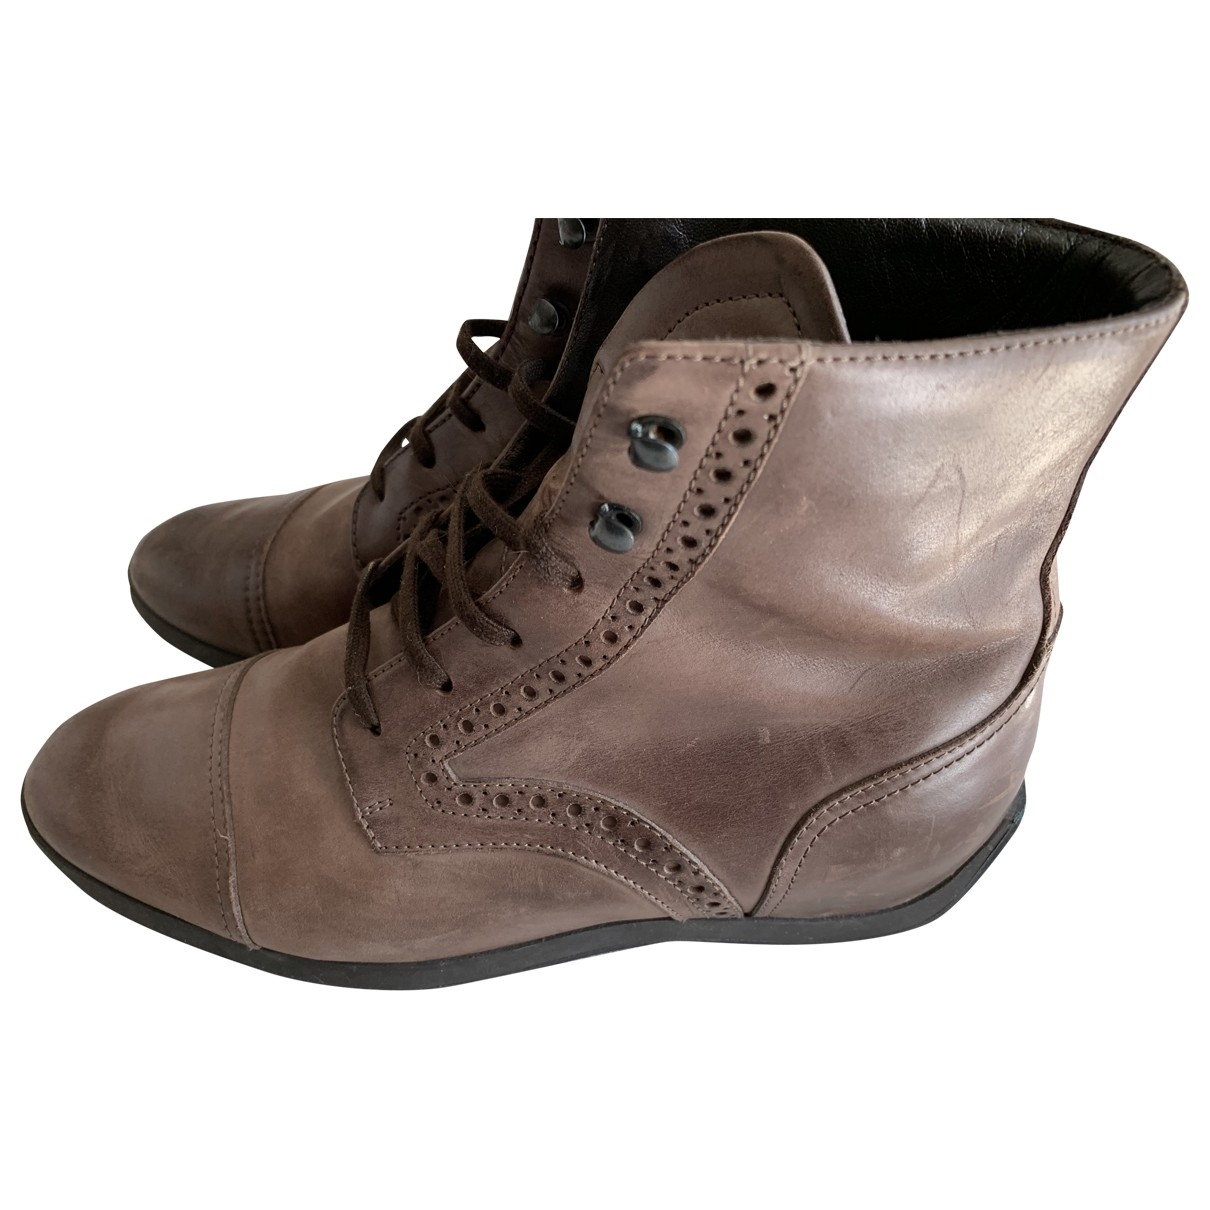 Hogan \N Brown Leather Boots for Women 37 EU